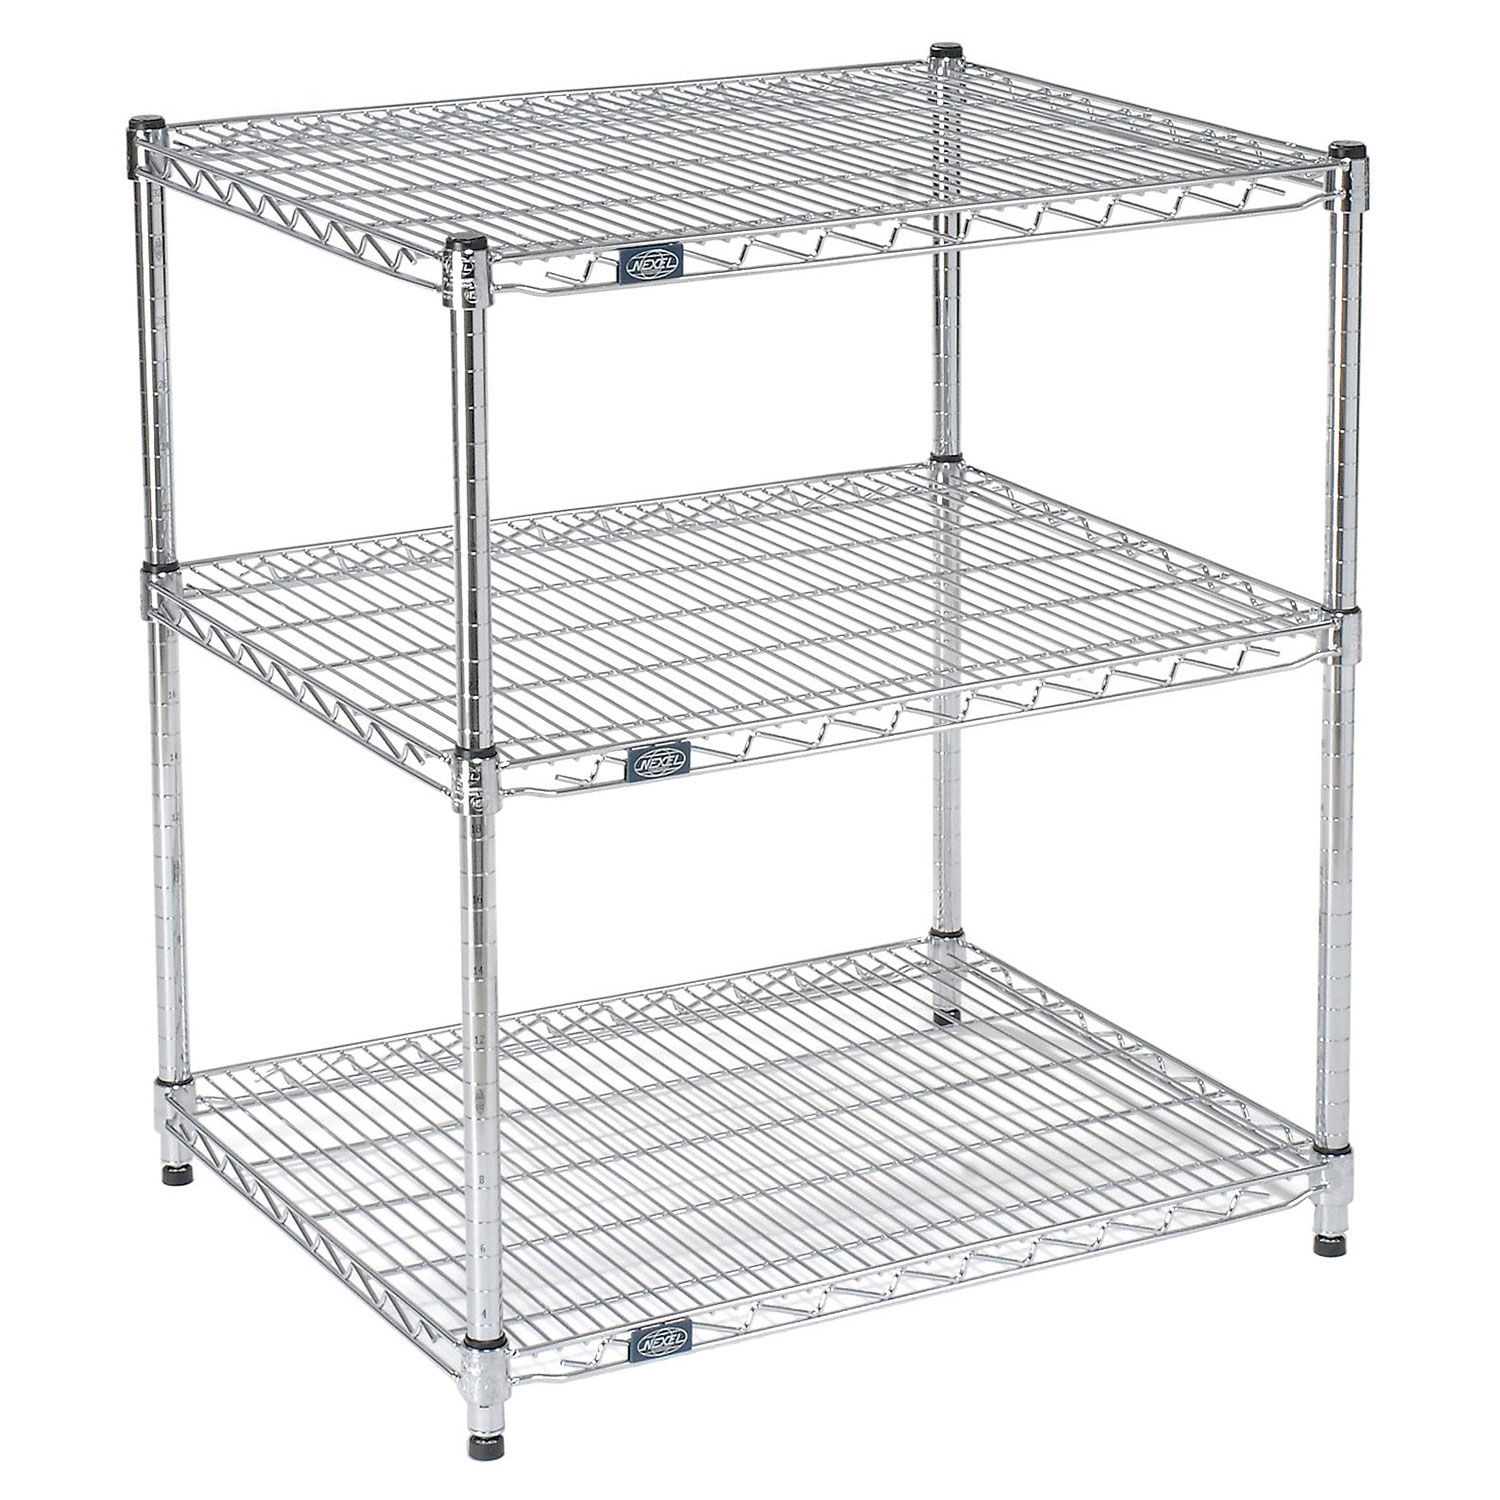 Chrome Wire Printer Stand 3 Shelf 30 W X 24 D X 34 H